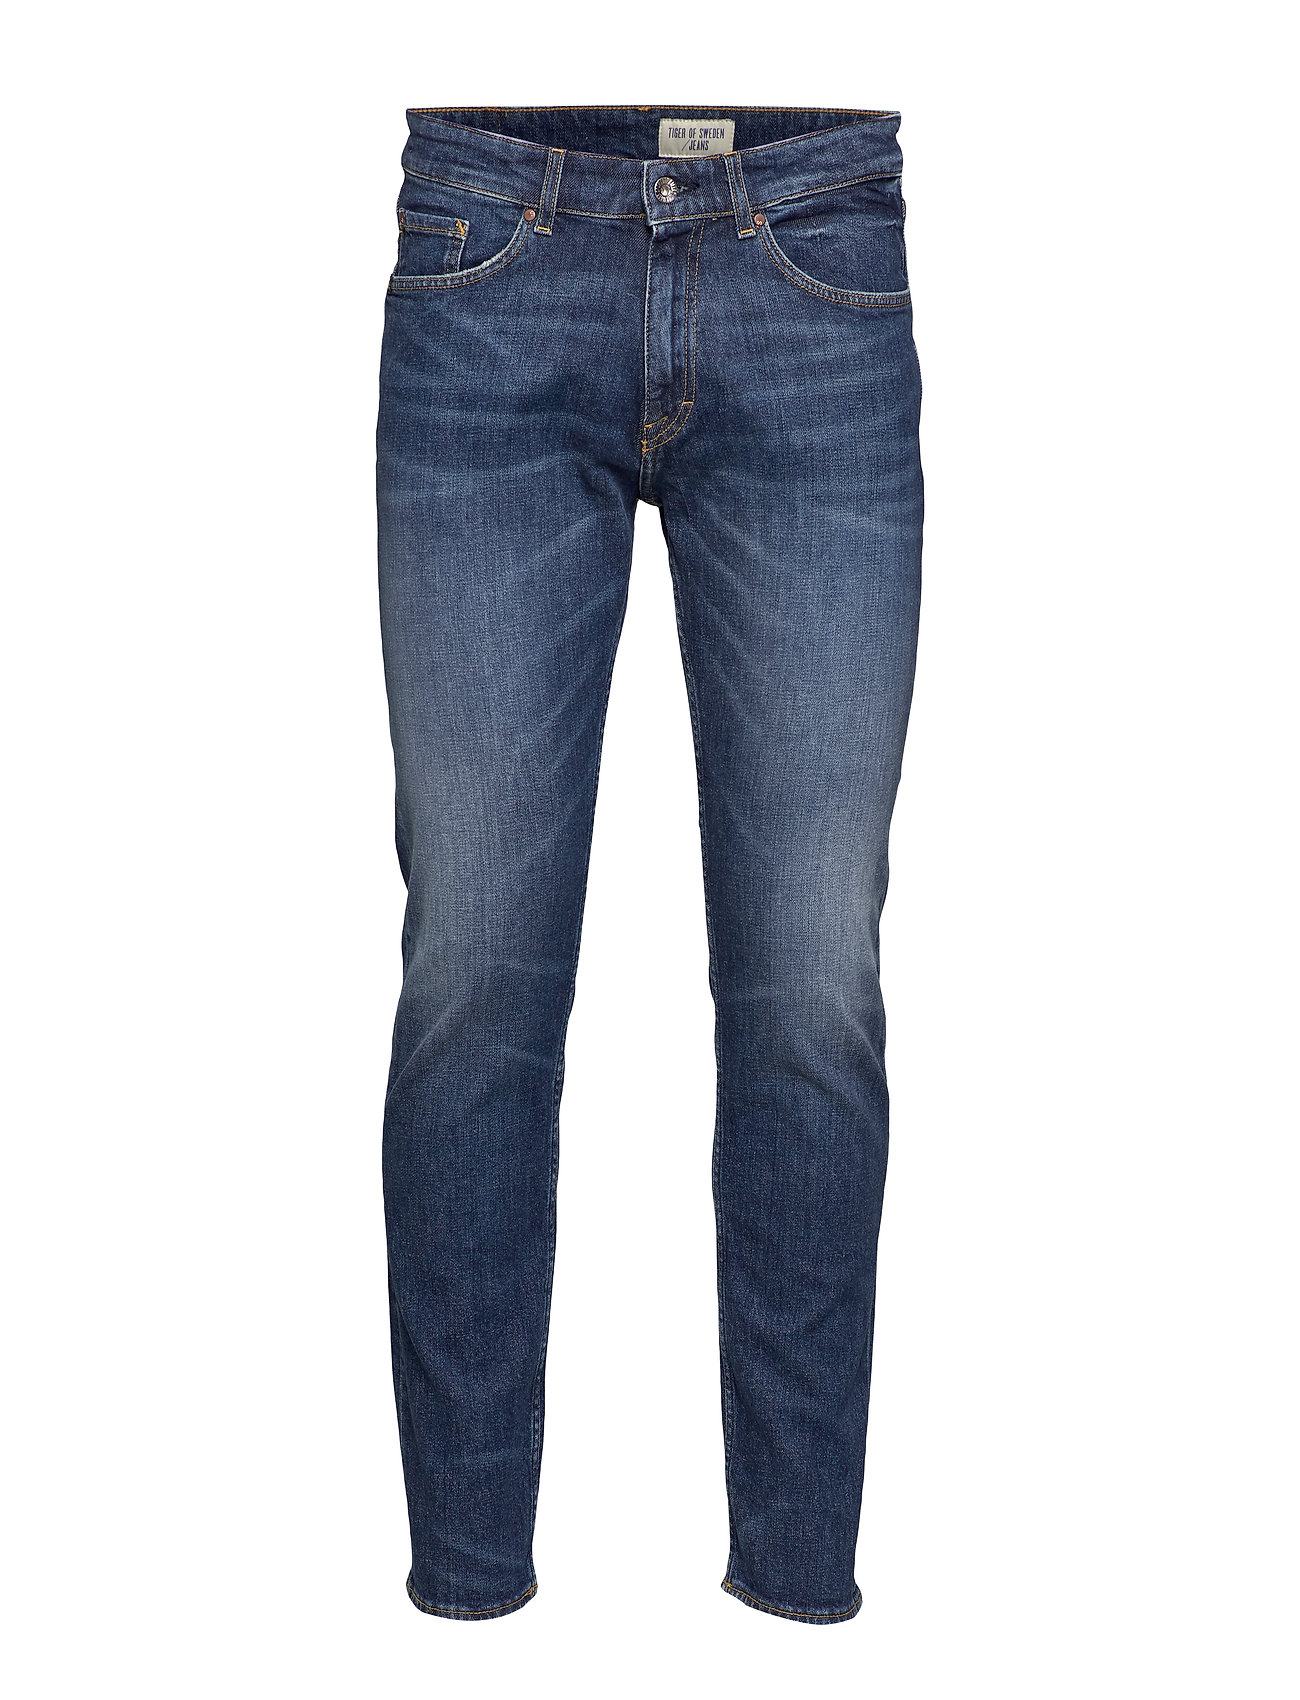 Tiger of Sweden Jeans REX - ROYAL BLUE